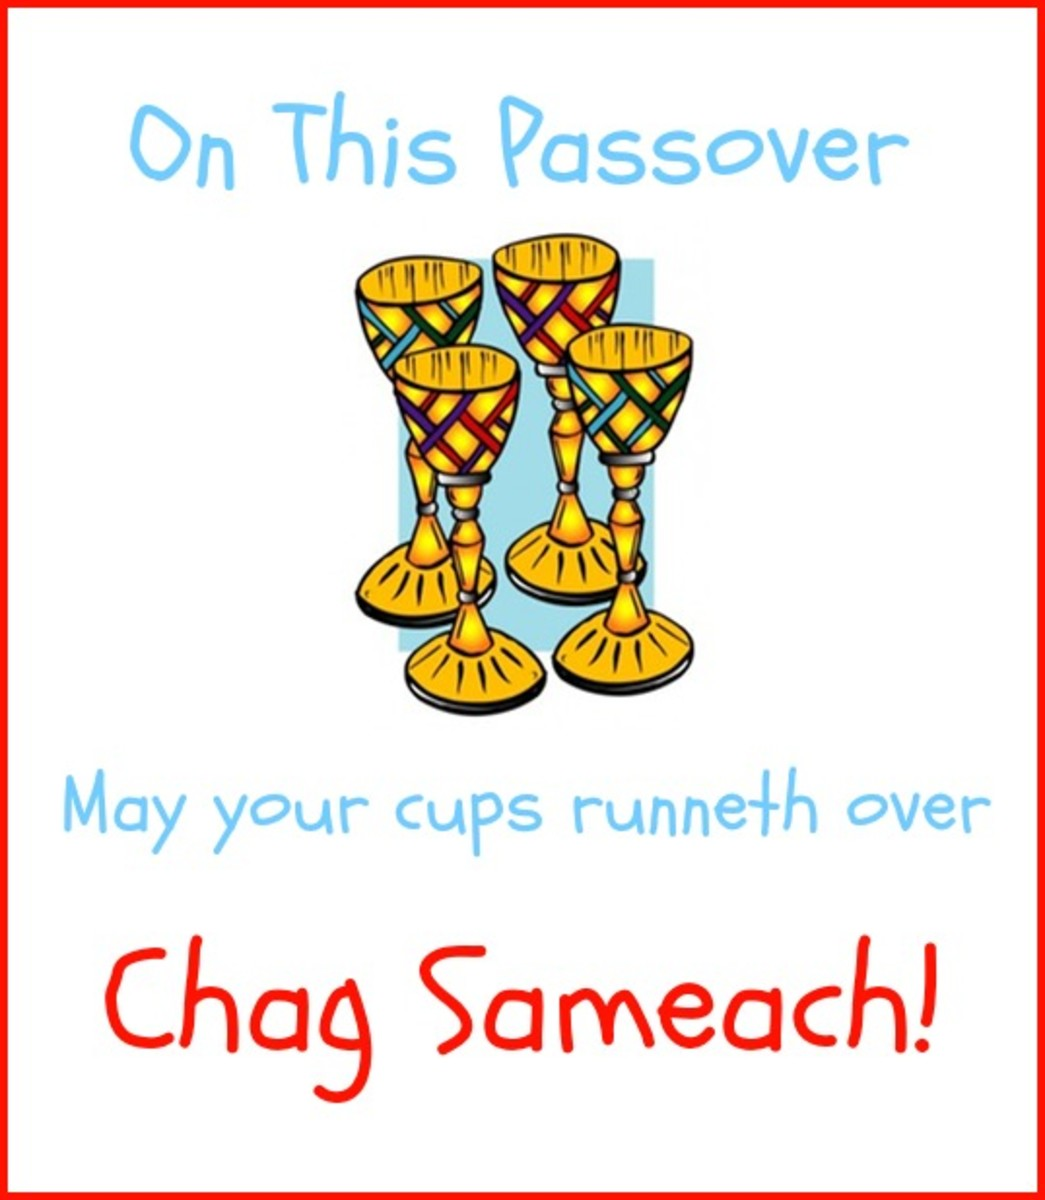 Happy Passover with Four Cups of Wine and Chag Sameach!